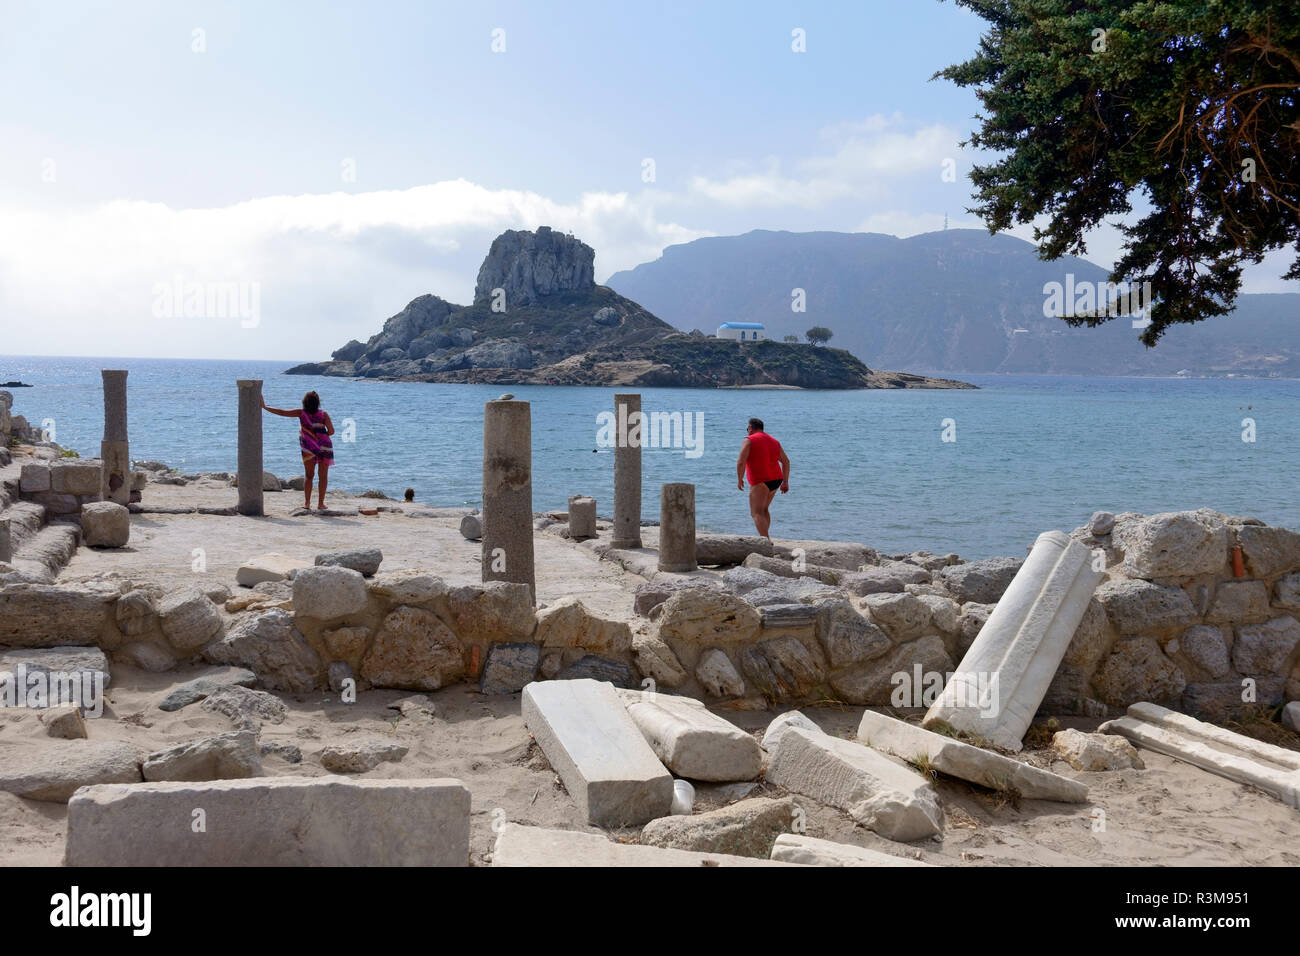 Tourists exploring the ruins of the Basilica of Ayious Stefanos at Kamari on the Greek island of Kos. The island of Kastri is also seen in the bay. - Stock Image